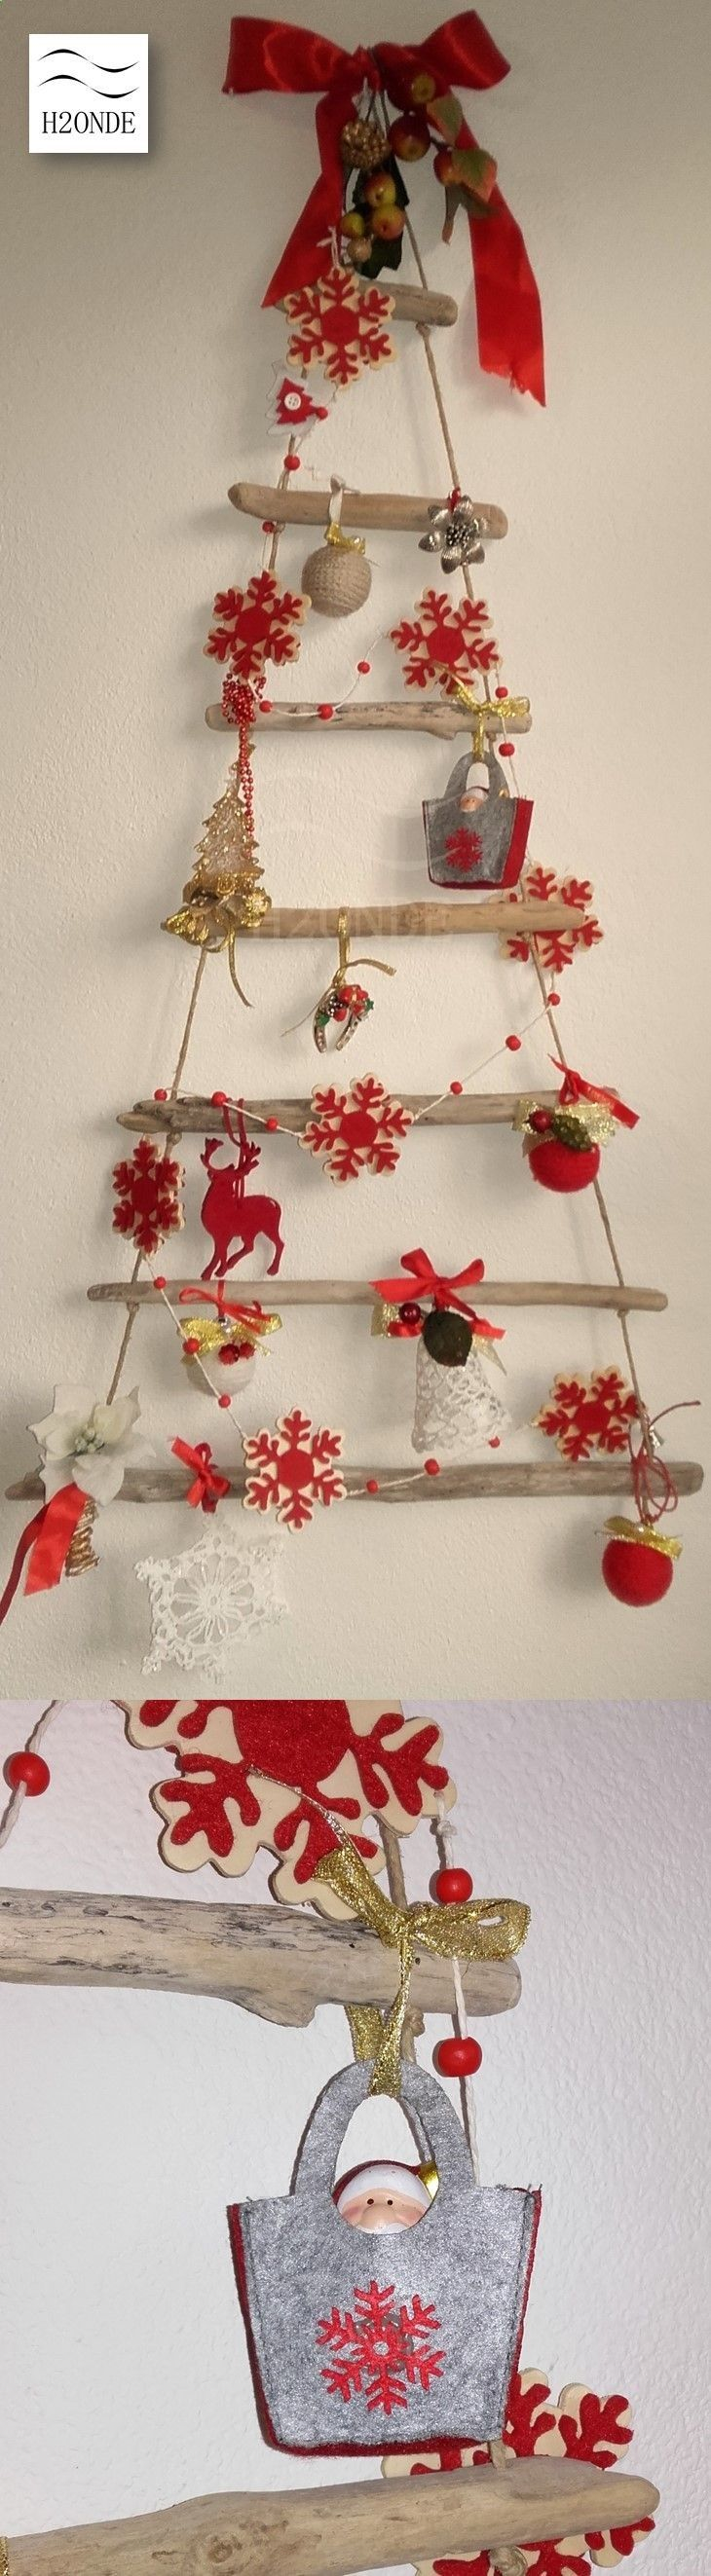 Wood Wall Christmas Tree Driftwood Xmas Modern Coastal Beach Decor